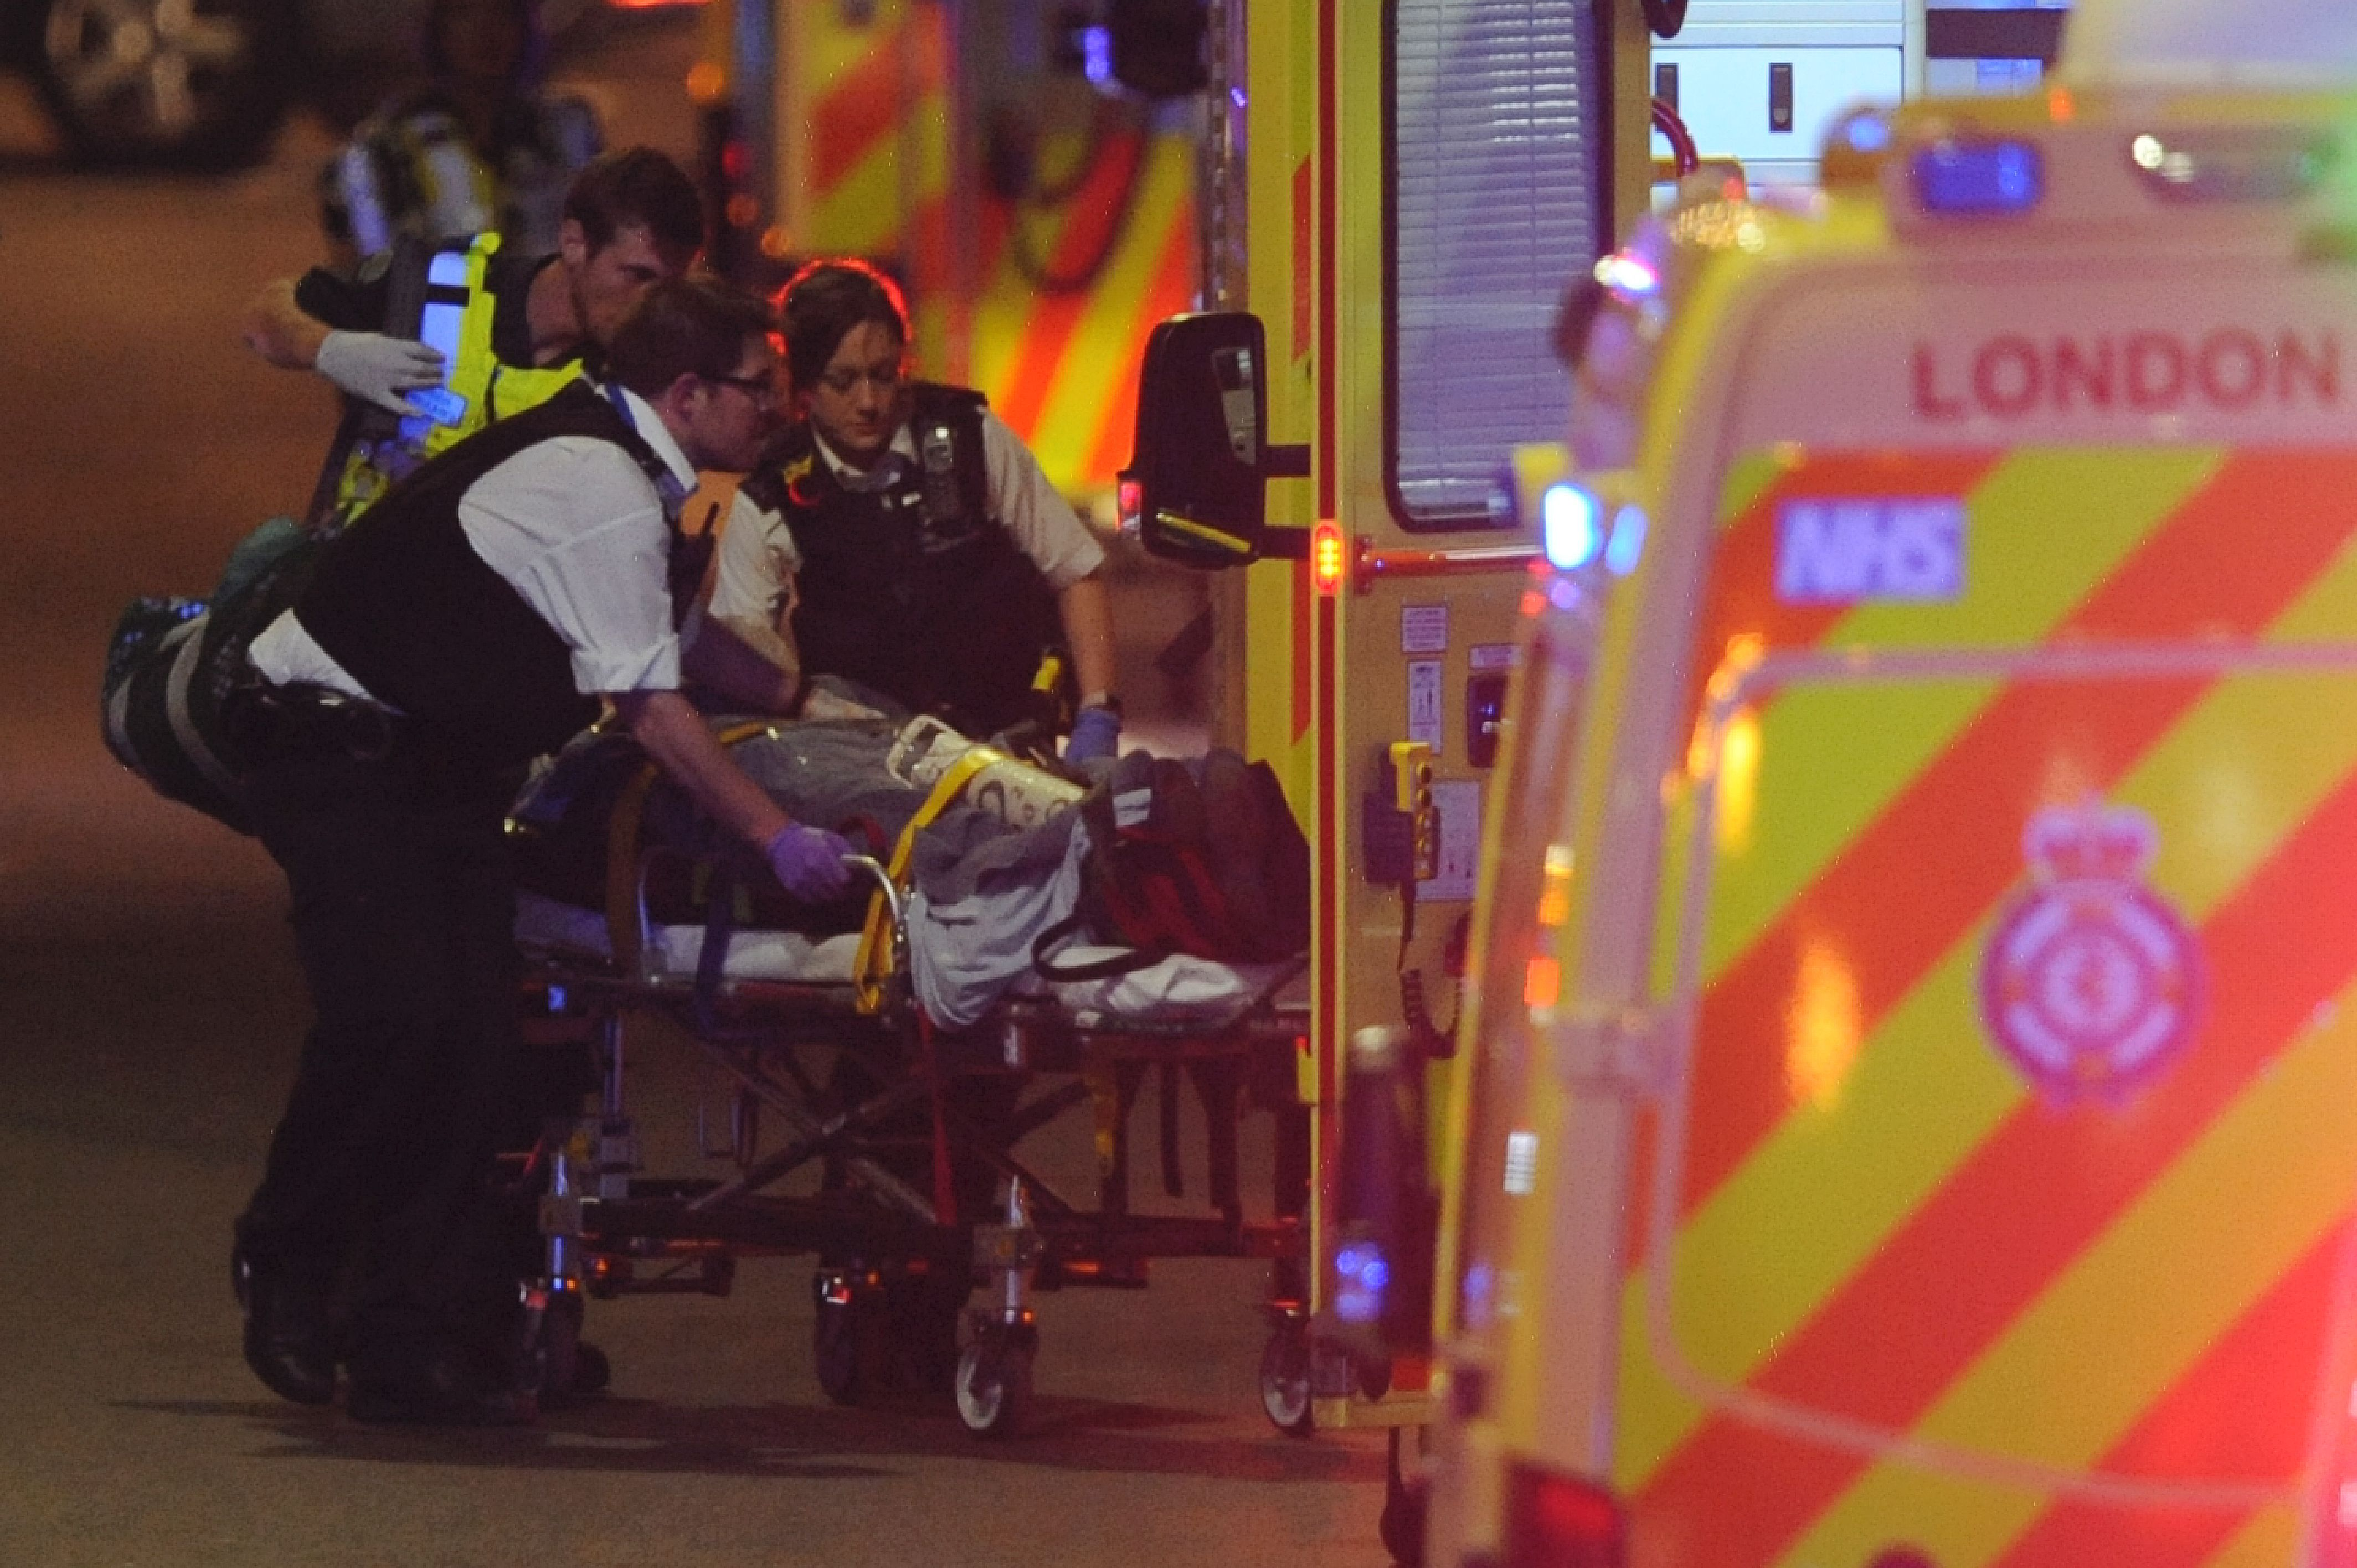 Police officers and members of the emergency services attend to a person injured in a terror attack on London Bridge in central London on June 3, 2017. (Daniel Sorabji/AFP/Getty Images)